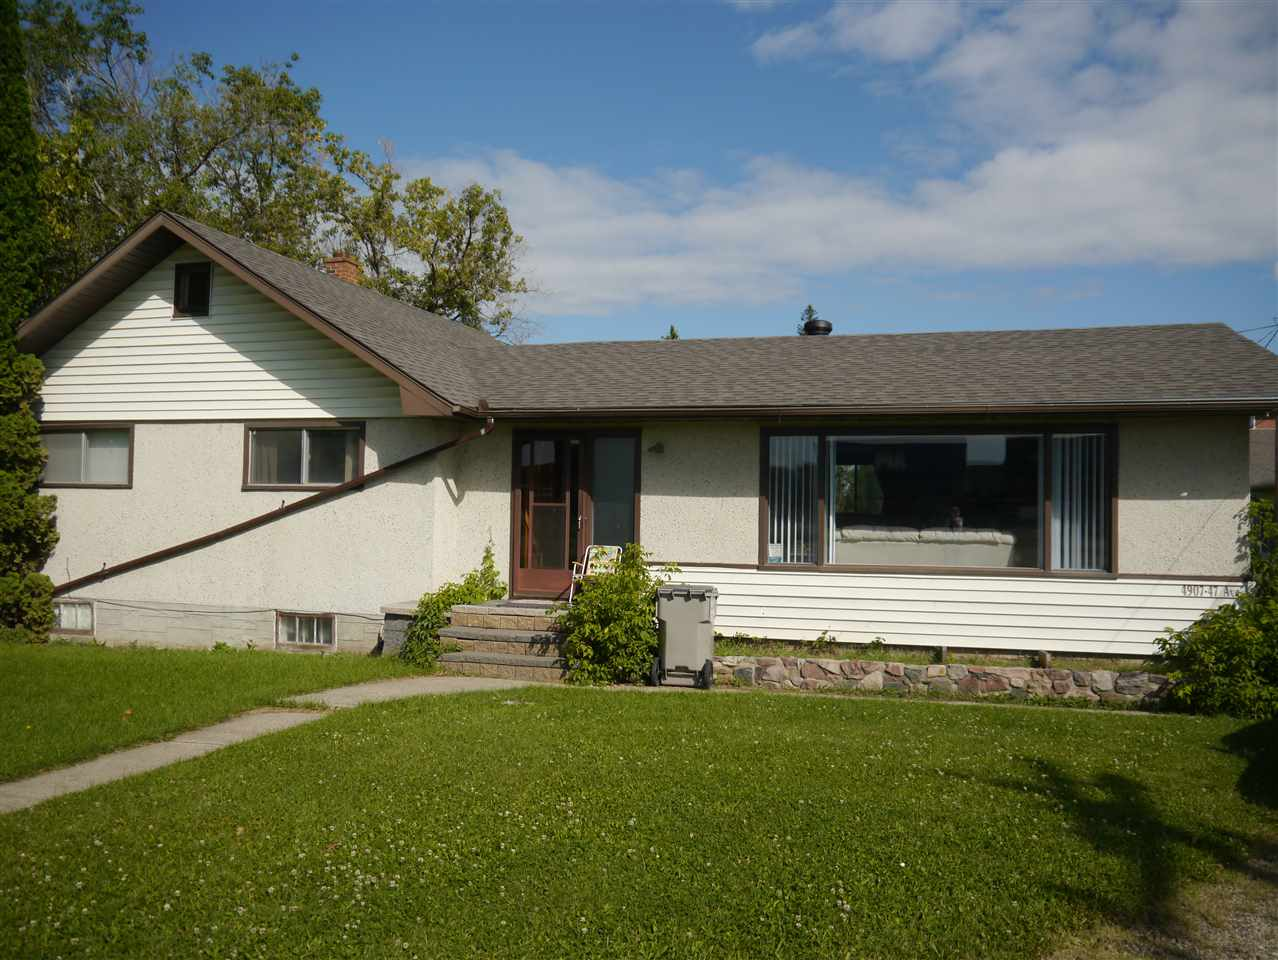 Two, 1 acre parcels, side by side. Zoned C3 Central mixed. 4907 is rented for $1,100 per month and is 1460 sq. feet and has 3 bedrooms and a two piece ensuite. It was built in 1951 but had a large addition done in the 80's. Tenants want to stay.  4911 is rented to a construction company for $2,000. per month and is 831 sq. ft and has a 4 pc bath. It was built in 1941 and has a few upgrades. Two single garages and large storage shed stay.  Endless possibilities for development. Homes and appliances as is where is. Floor area is for 4907. Smaller house is 831 sq. ft. Property has been approved in the past for a 92 suite apartment building with commercial frontage or 25 residential lots.  Invest now and build later.